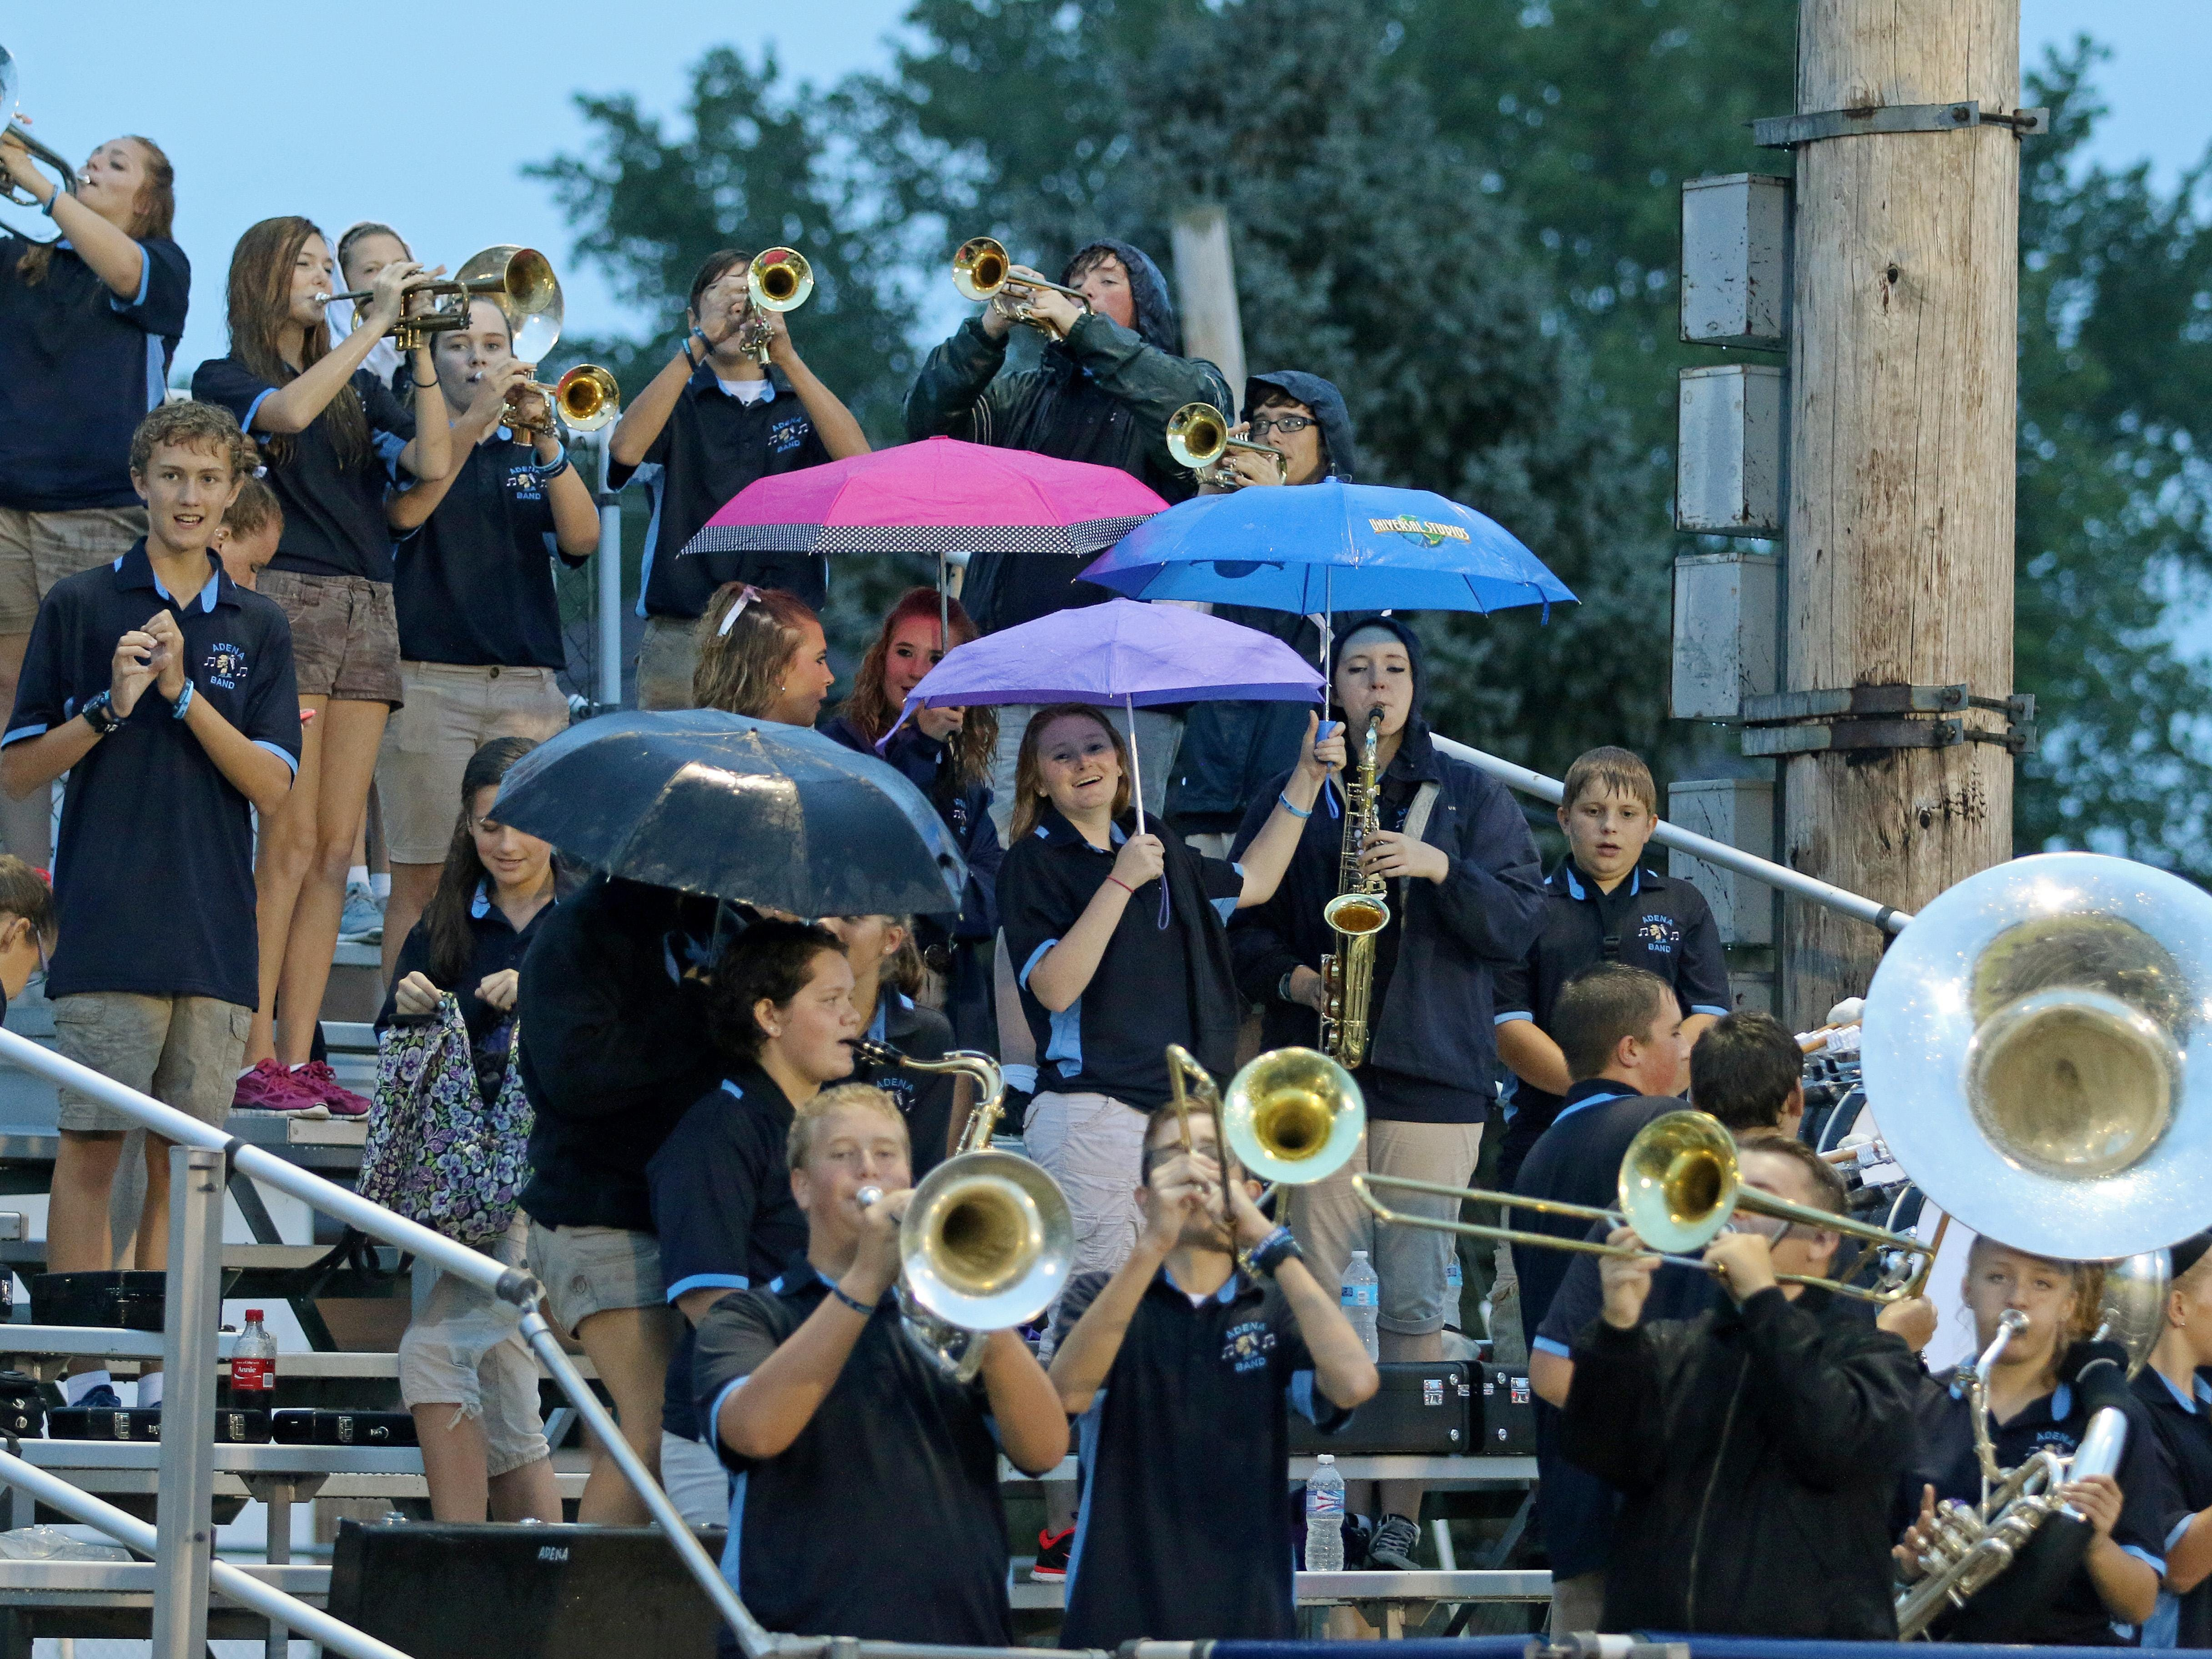 Members of the Adena High School marching band seek shelter from the rain underneath umbrellas during Friday's game. Despite being delayed, Adena played against Cincinnati Reading at Adena. The final score was Cincinnati Reading, 41, Adena 12.